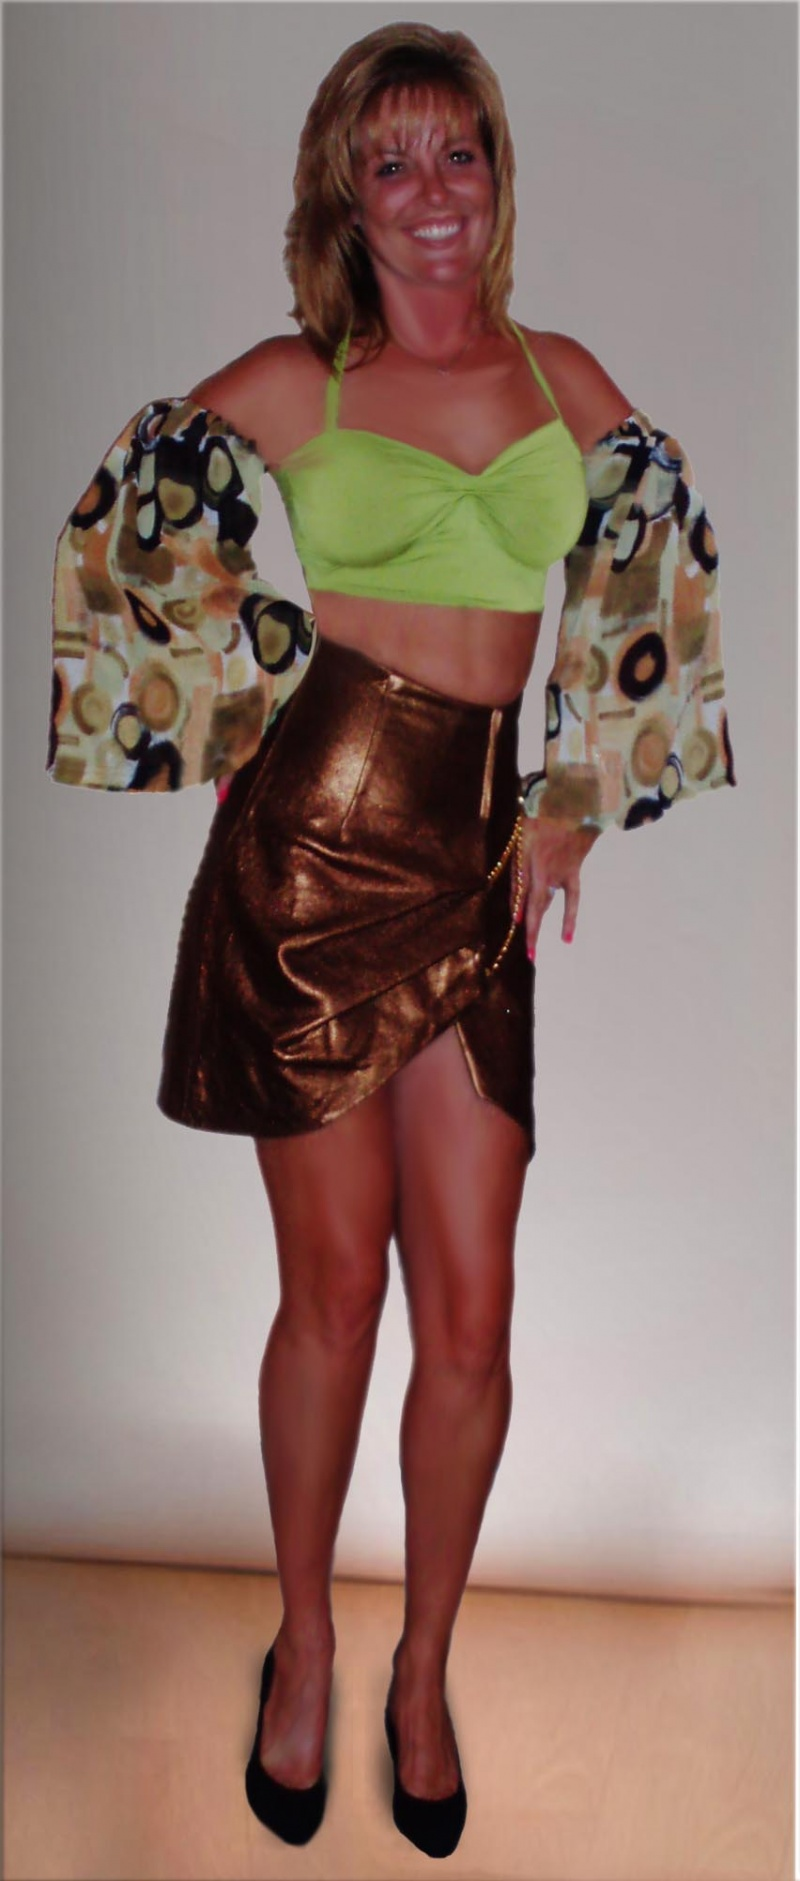 Private shoot Sep 11, 2009 Retro Metallic Collection; leather skirt and knit top with chiffon sleeves